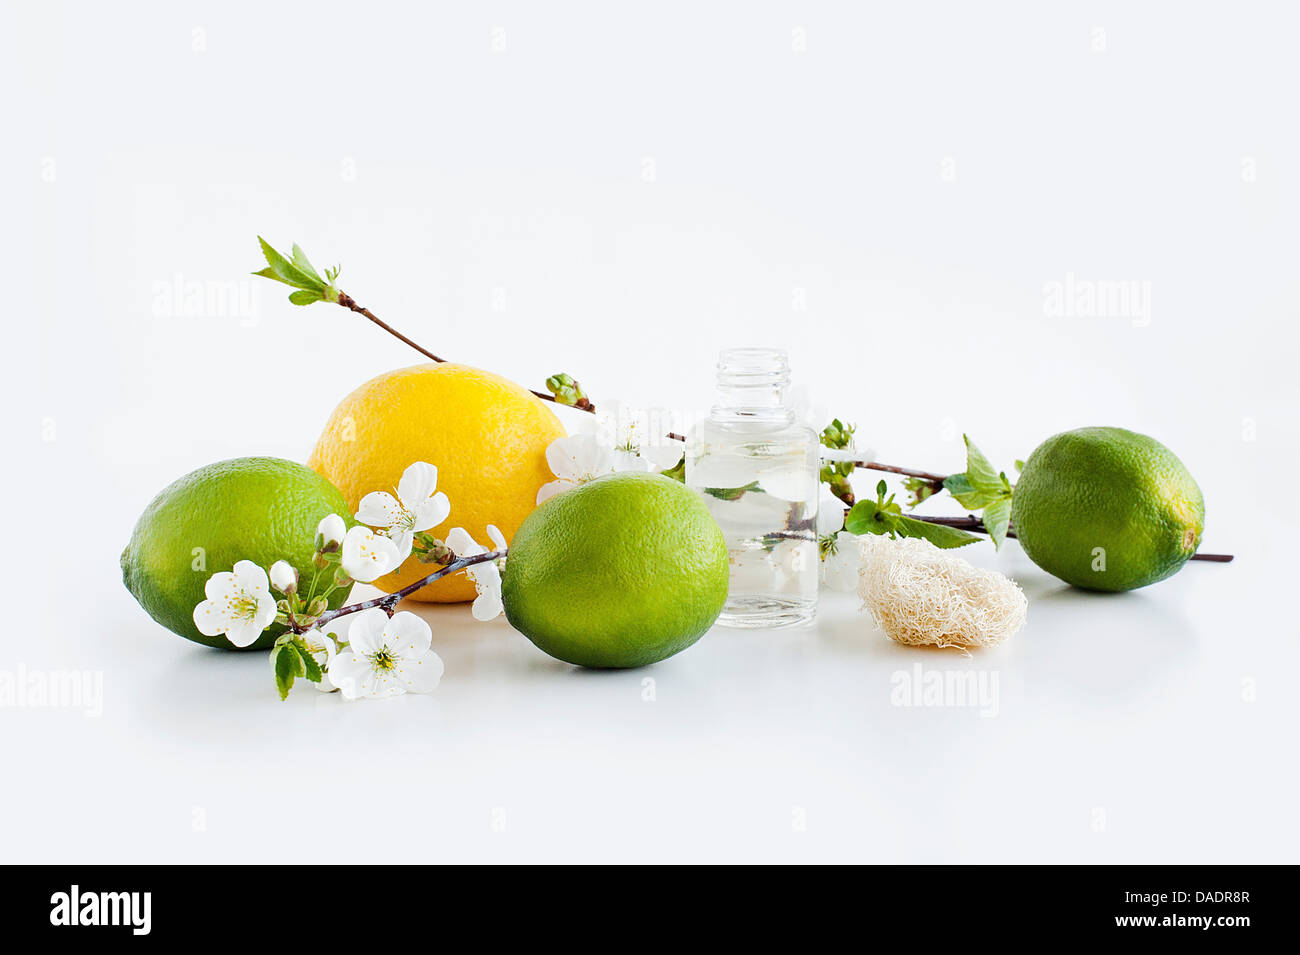 Still Life with aromatiques citron et lime blossom Photo Stock